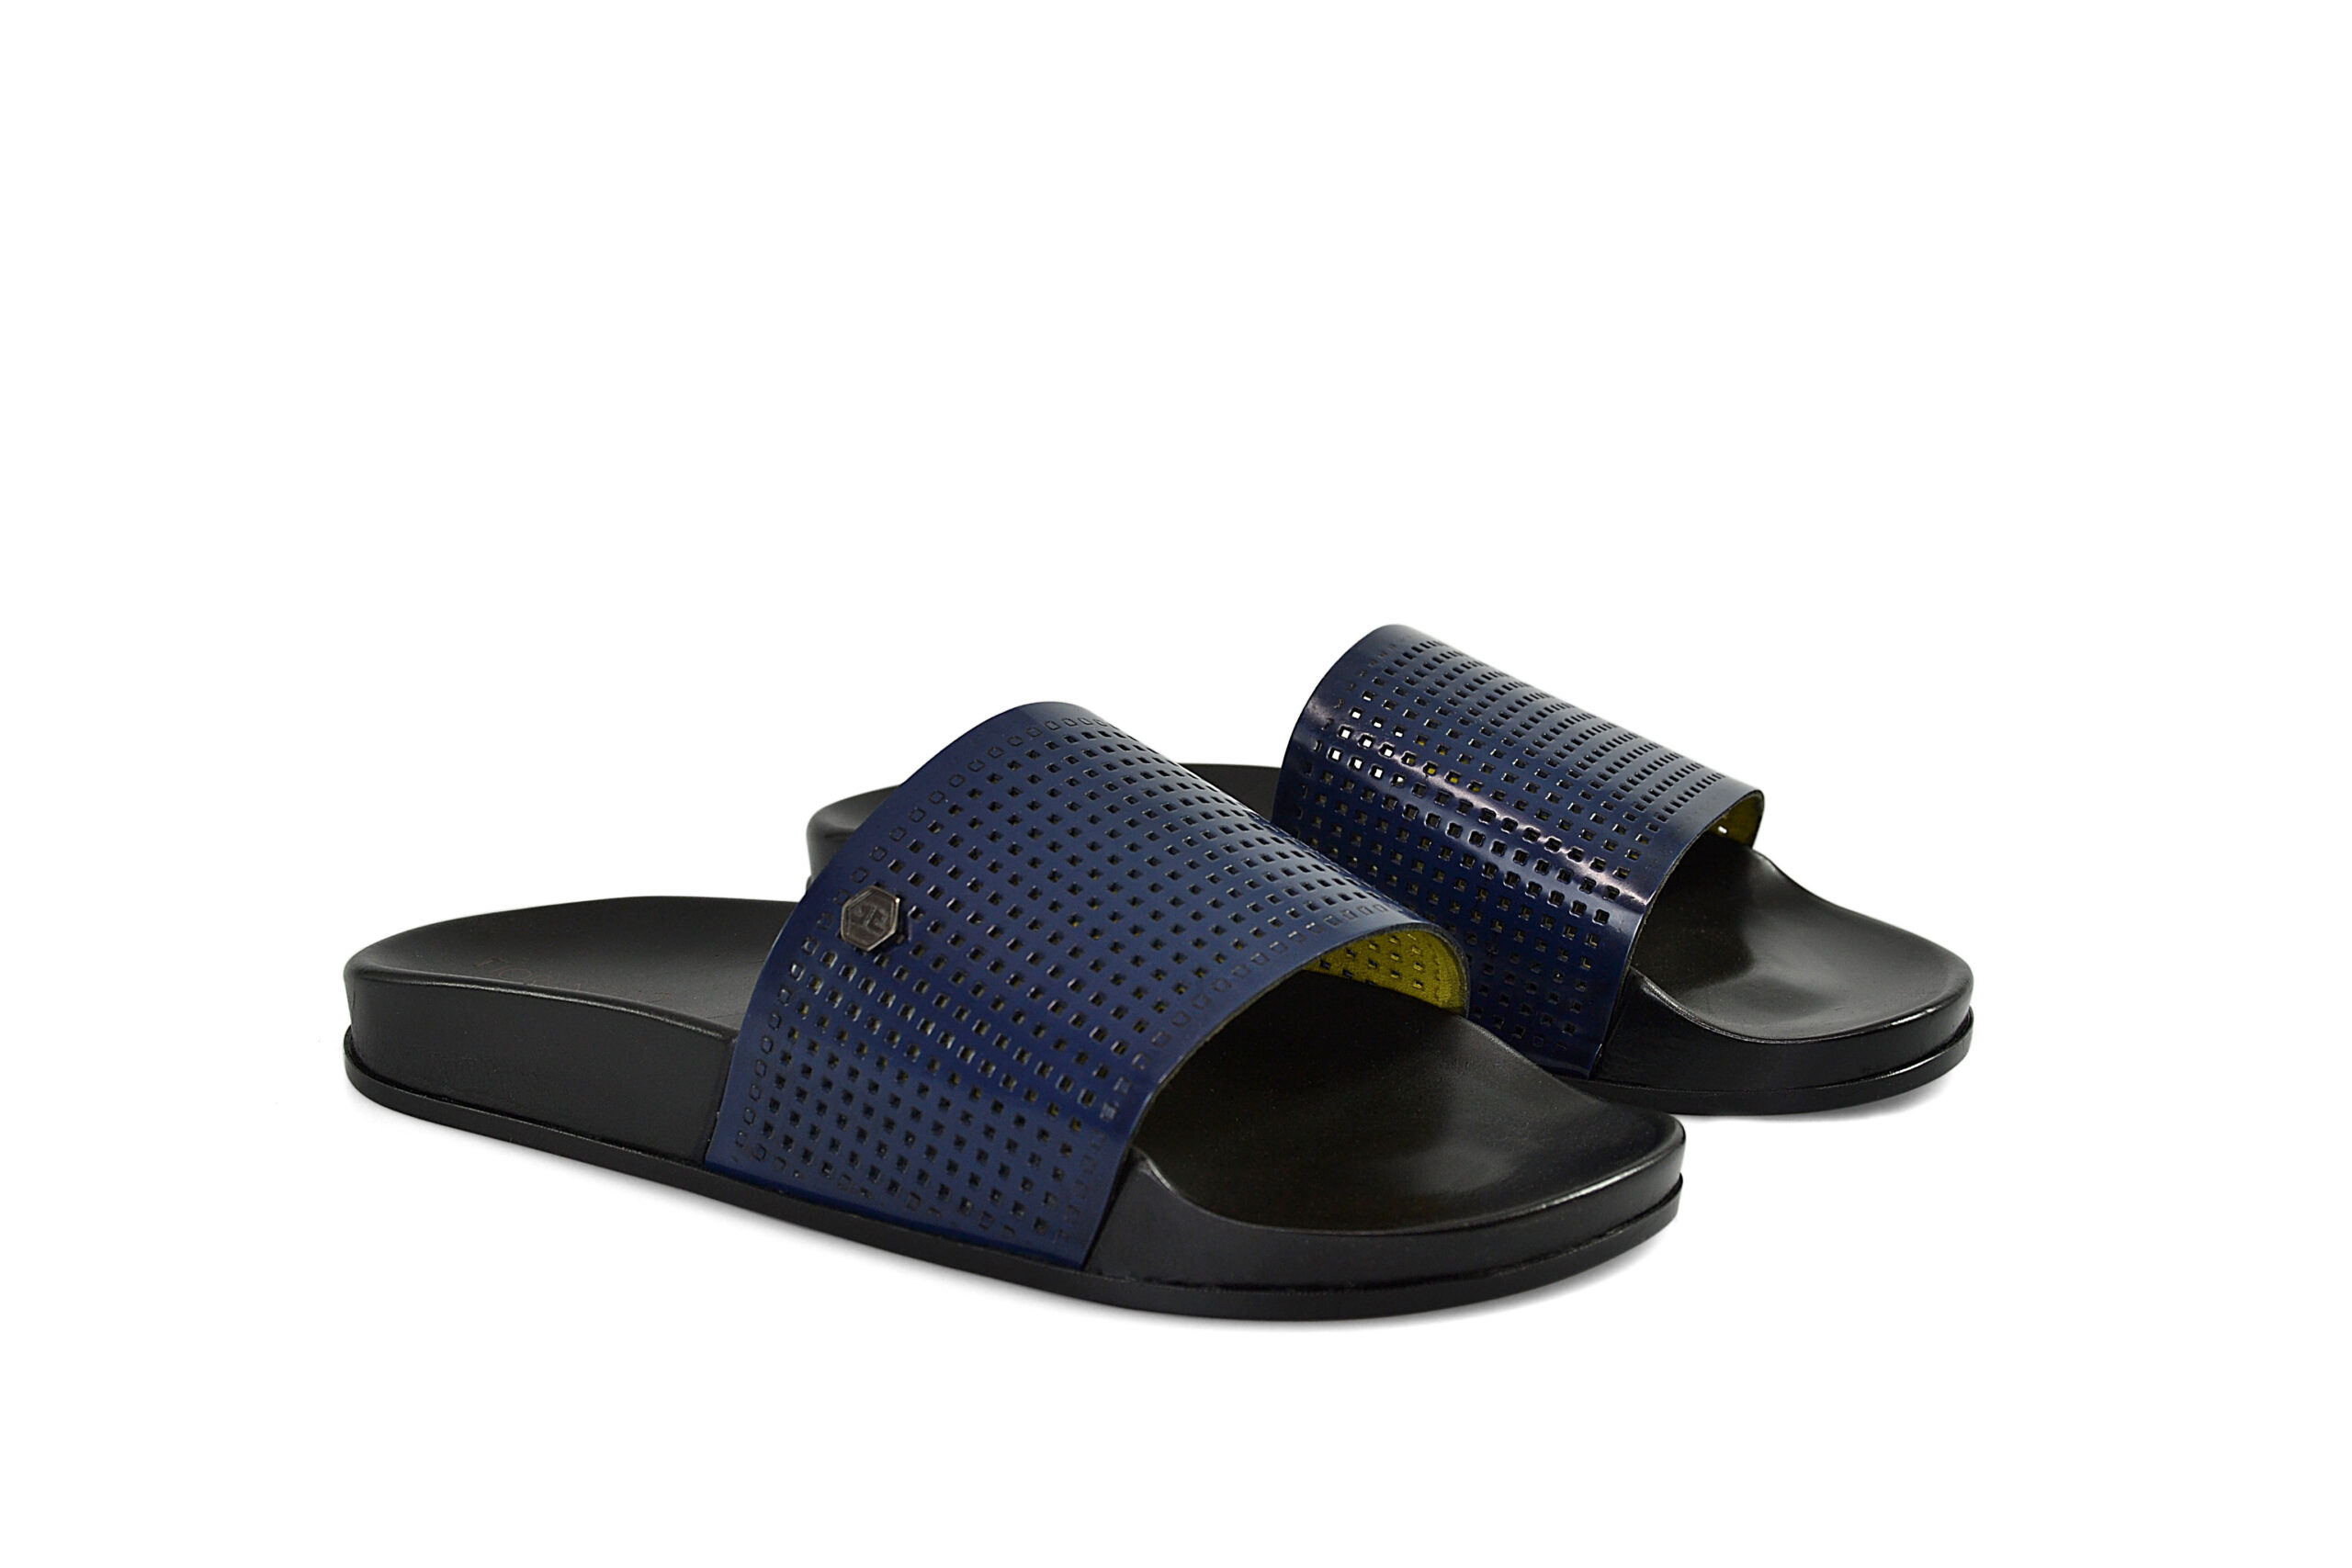 SHOES FIORANGELO MAN SS2021 ART. 92141 SANDALS ABRASIVATO BLUE TRAFORATO